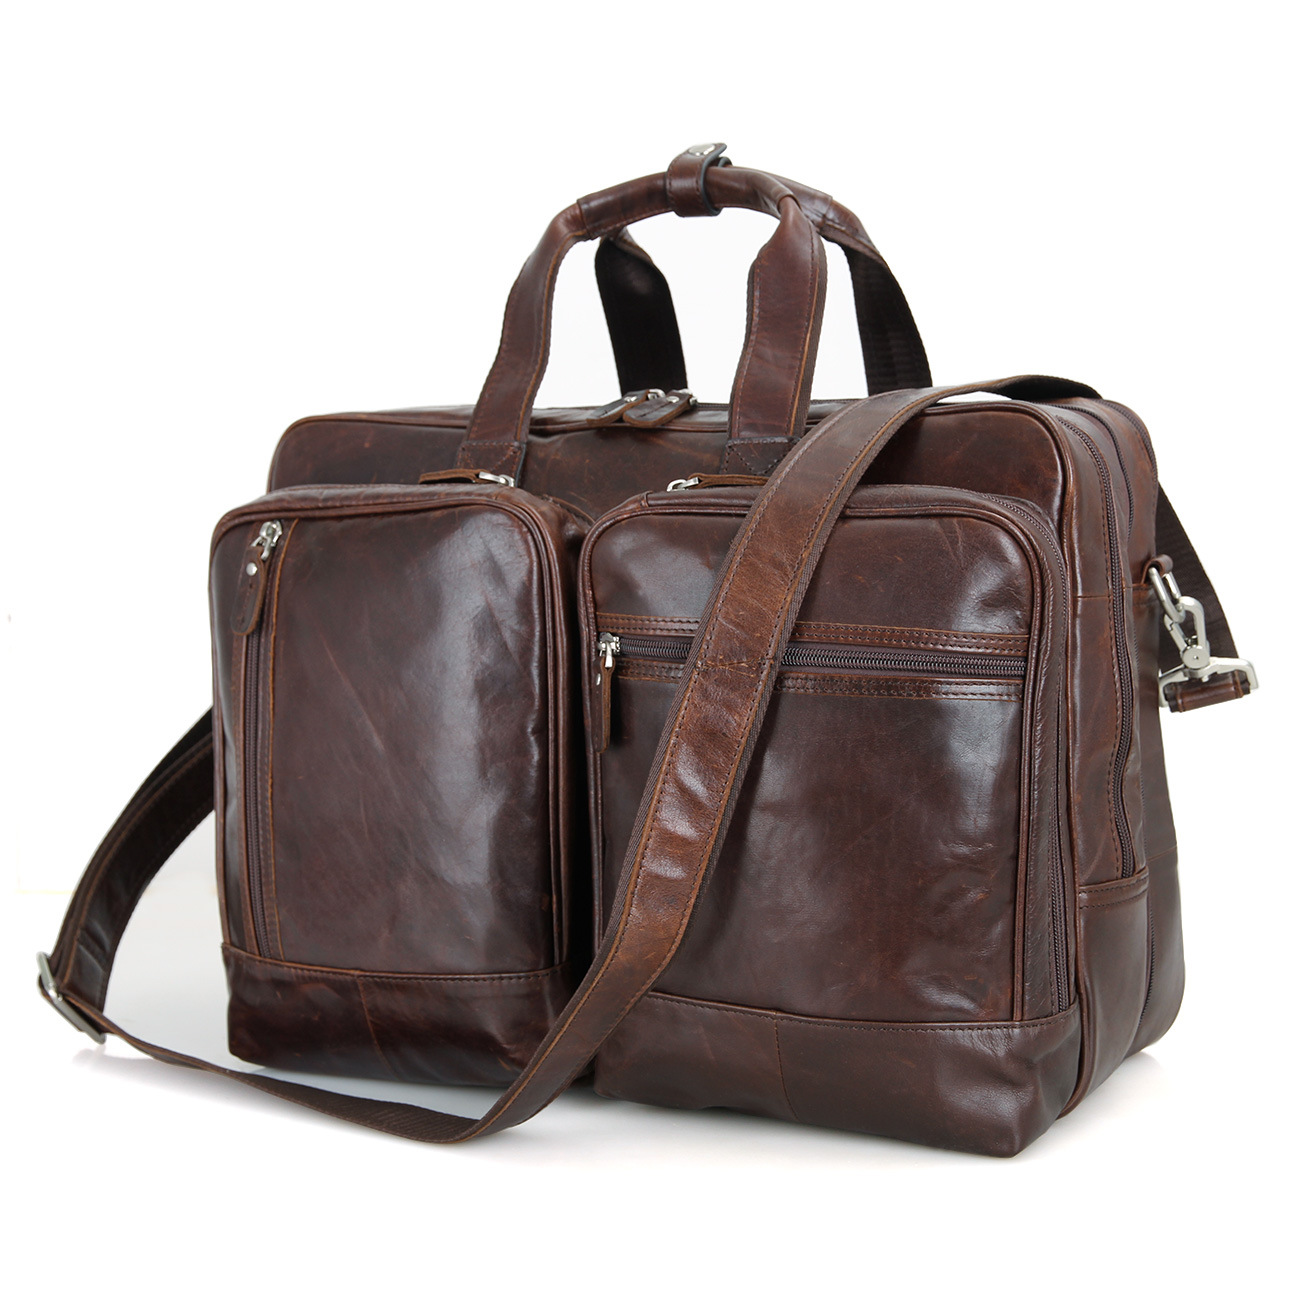 2016 Promotion Male Briefcases Natural Cow Leather Laptop 17inch Business Bags Men Large Handbags Travel Messenger Shoulder Bag genuine real cow leather messenger bags 14 inch laptop business men briefcases handbags men totes casual male work bag shoulder